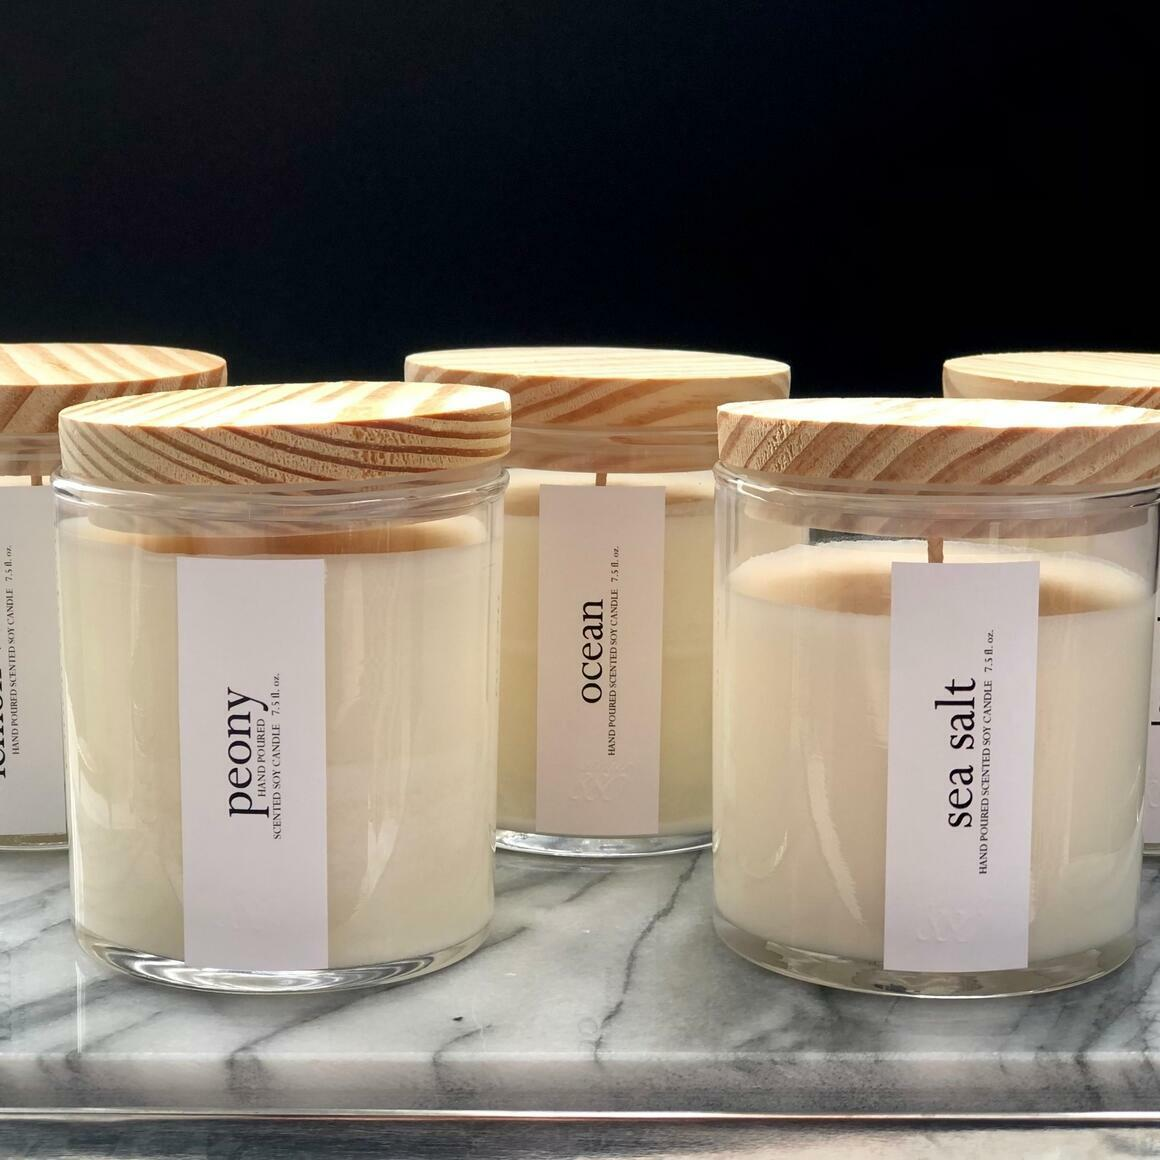 Minimalist Scented Candles - Clear Glass / Wood Lid | Trada Marketplace